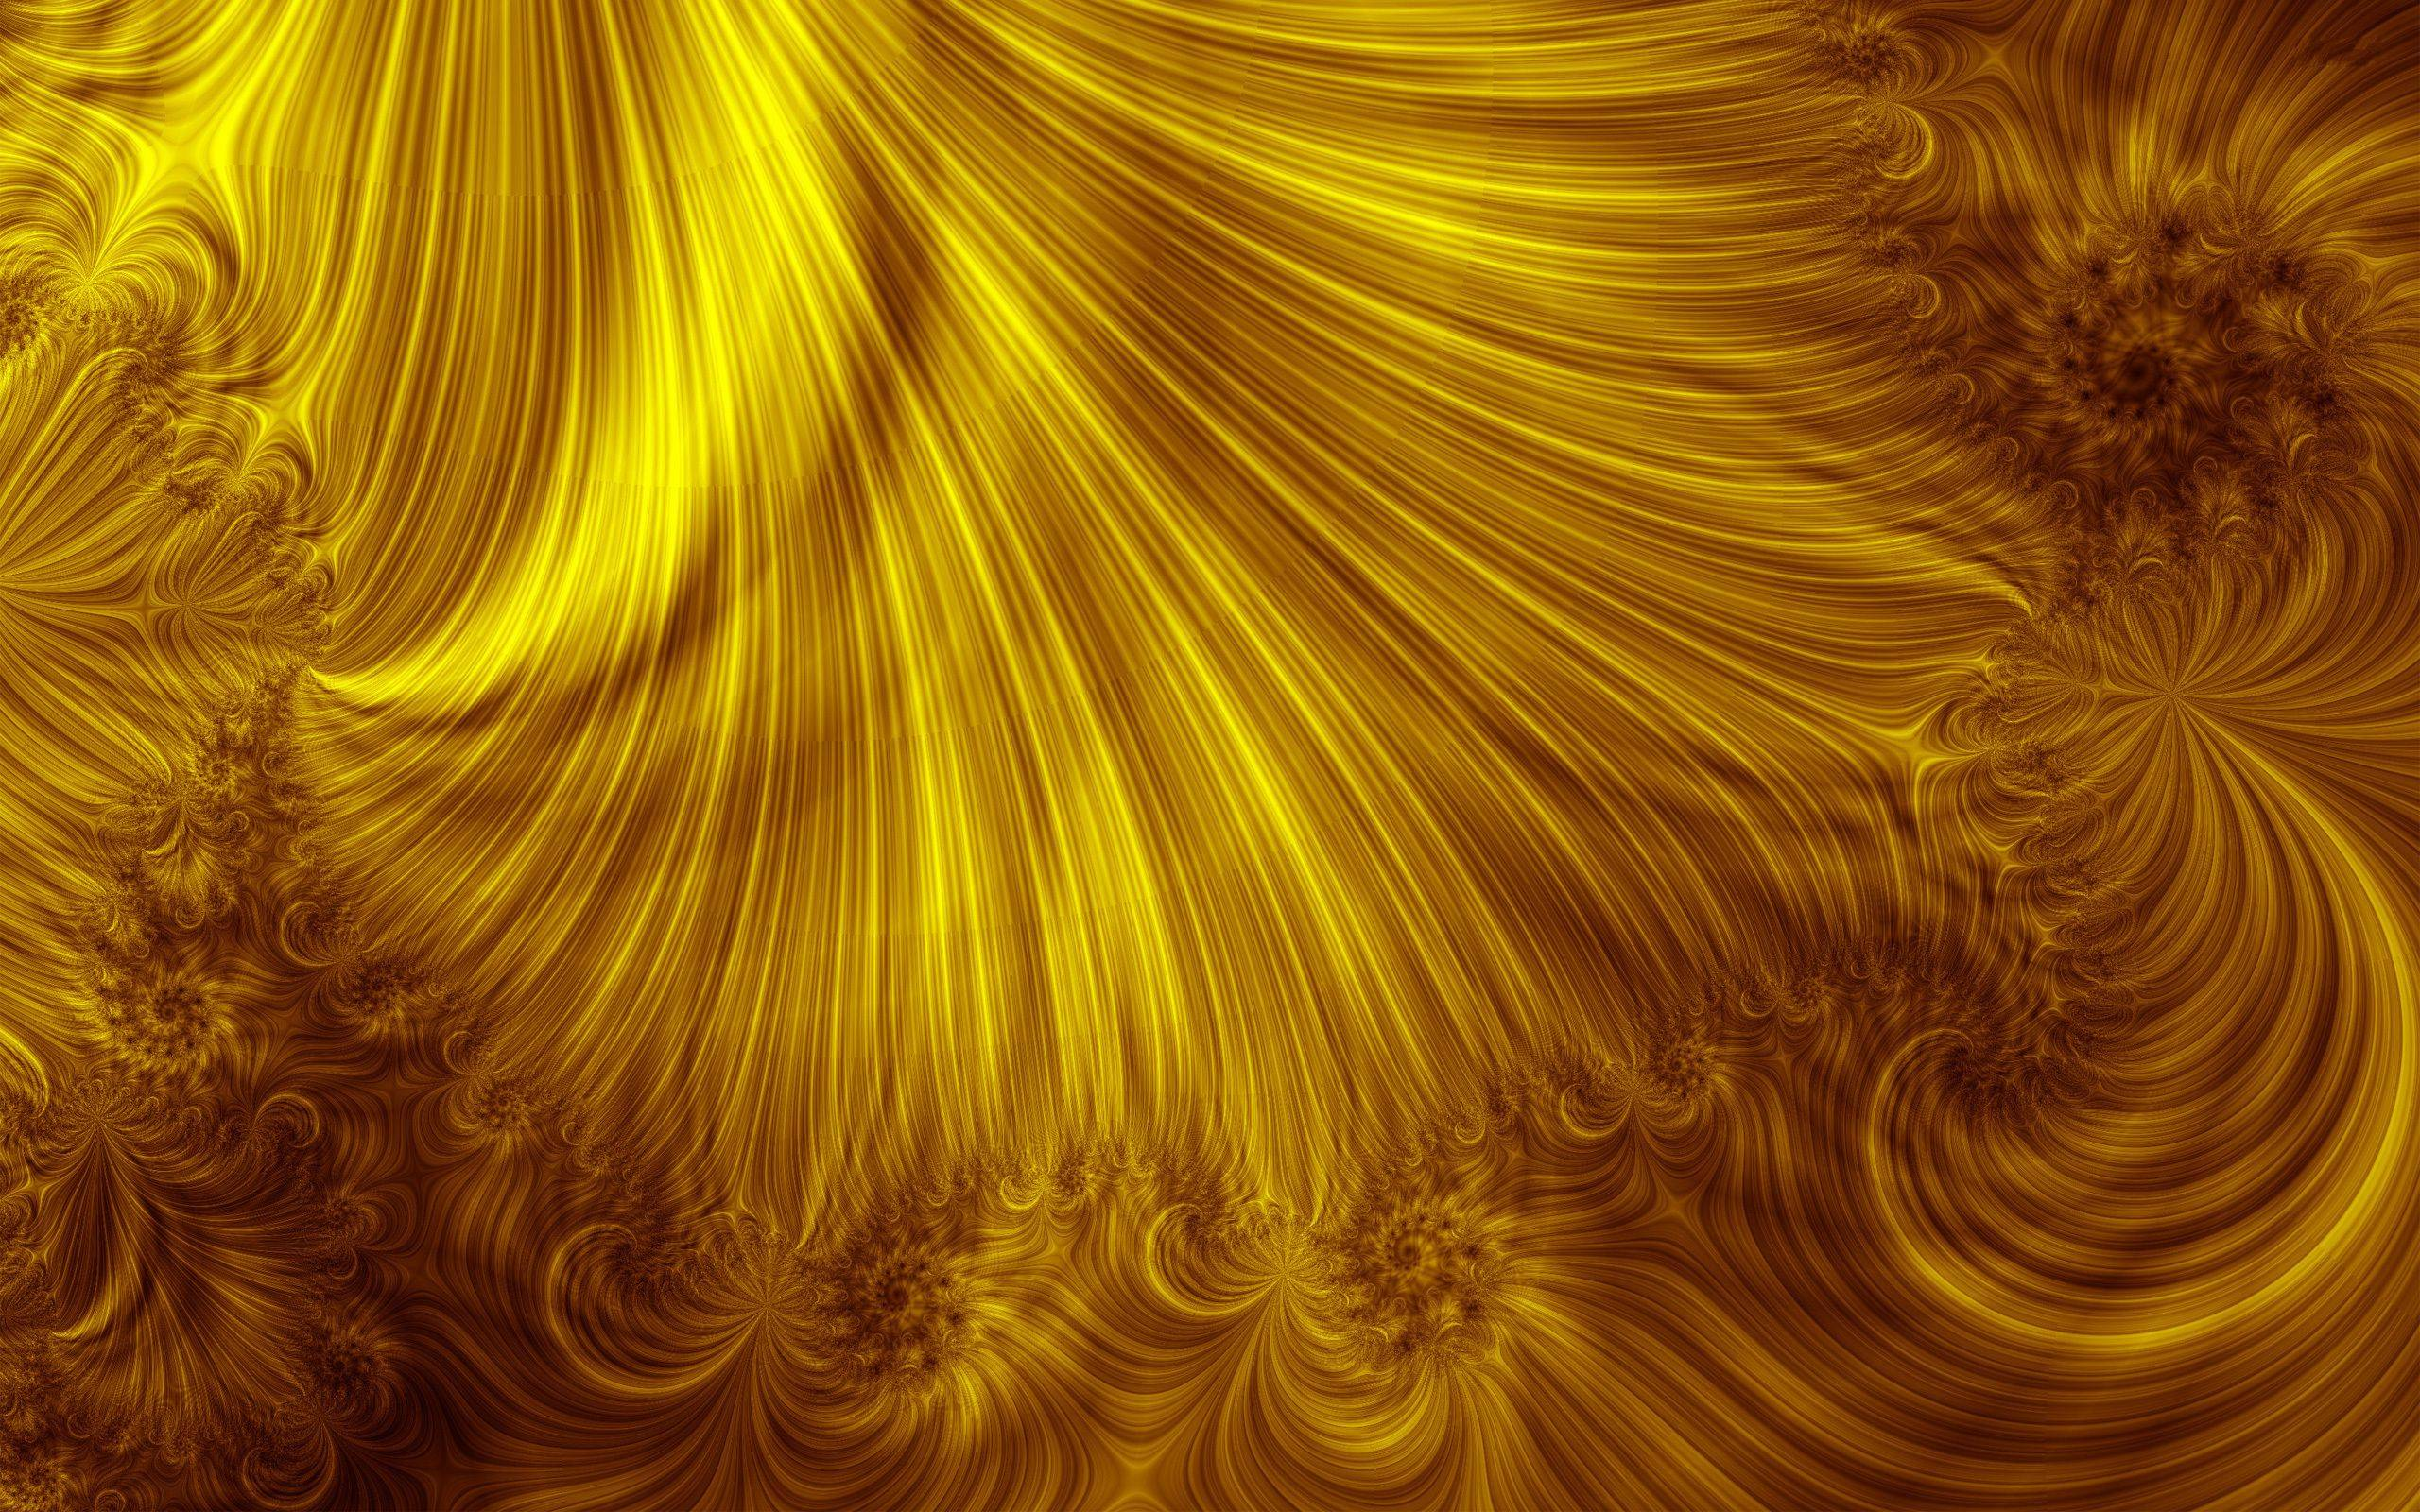 Gold color wallpapers wallpaper cave for Gold 3d wallpaper